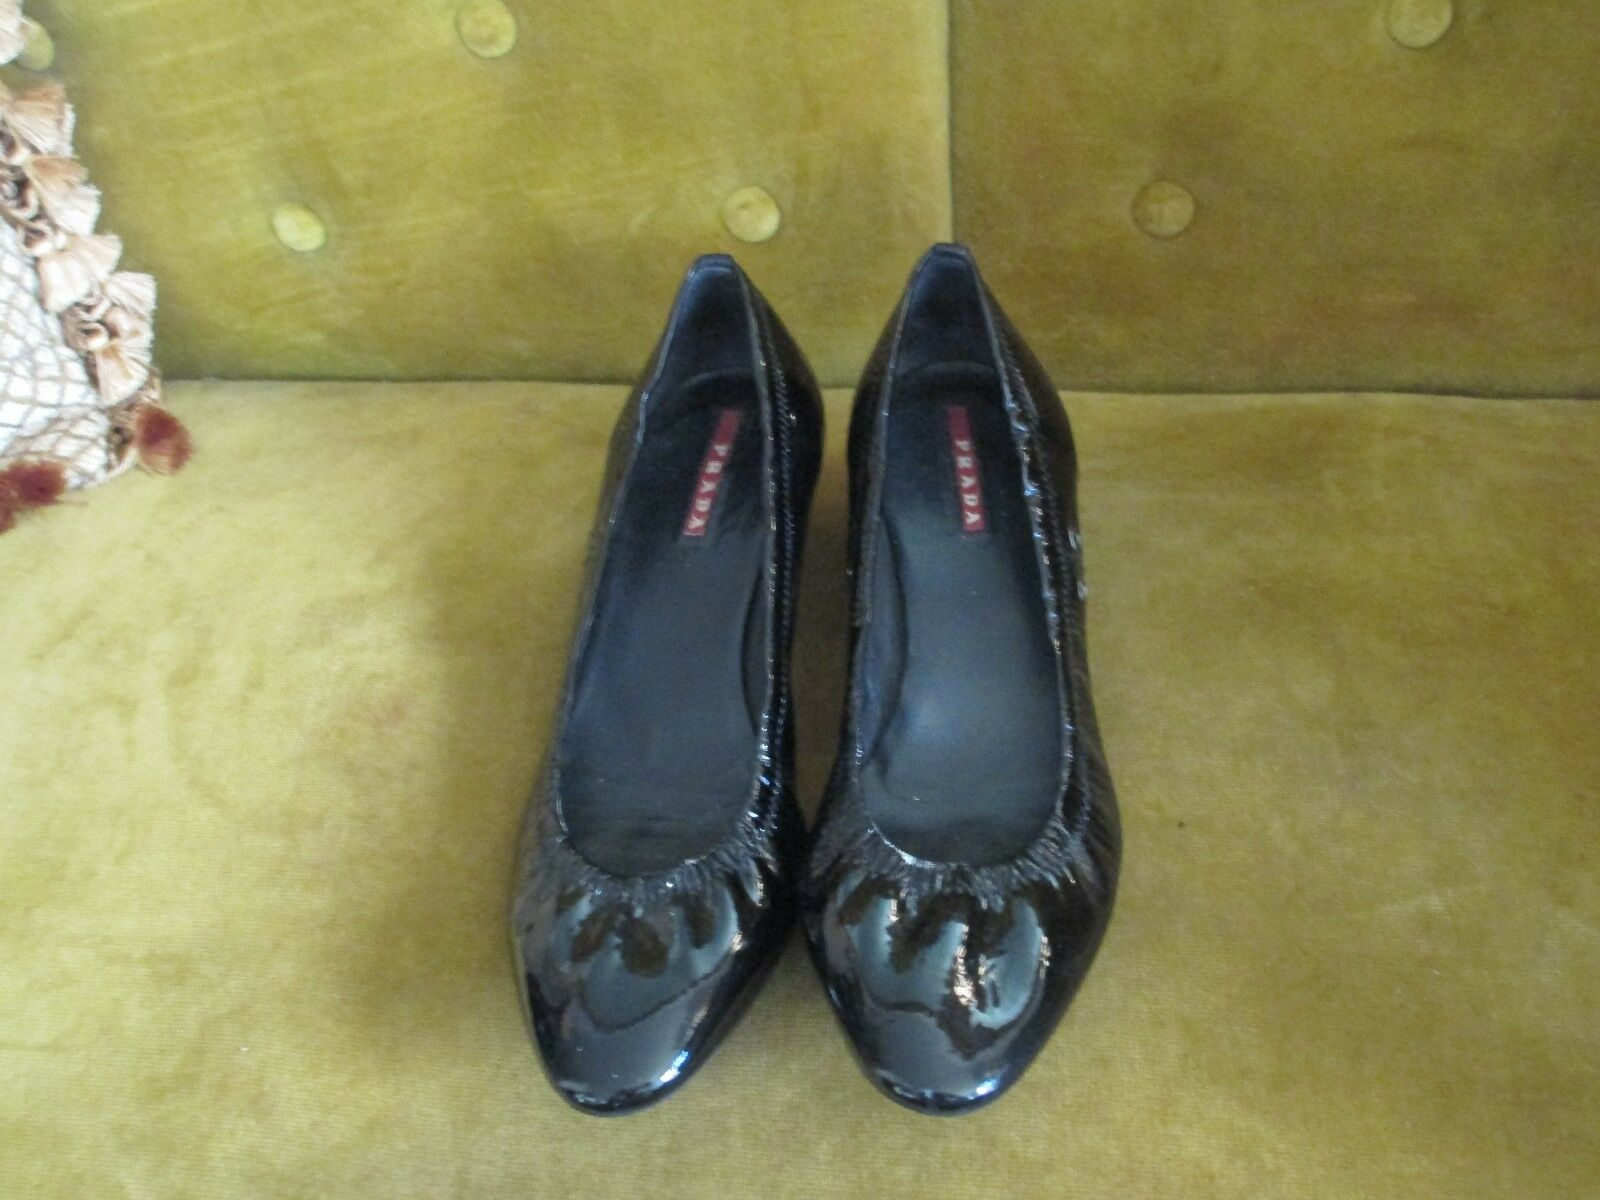 PRADA PATENT LEATHER CLASSICS PUMP HEELS SIZE 381 2 MADE IN ITALY